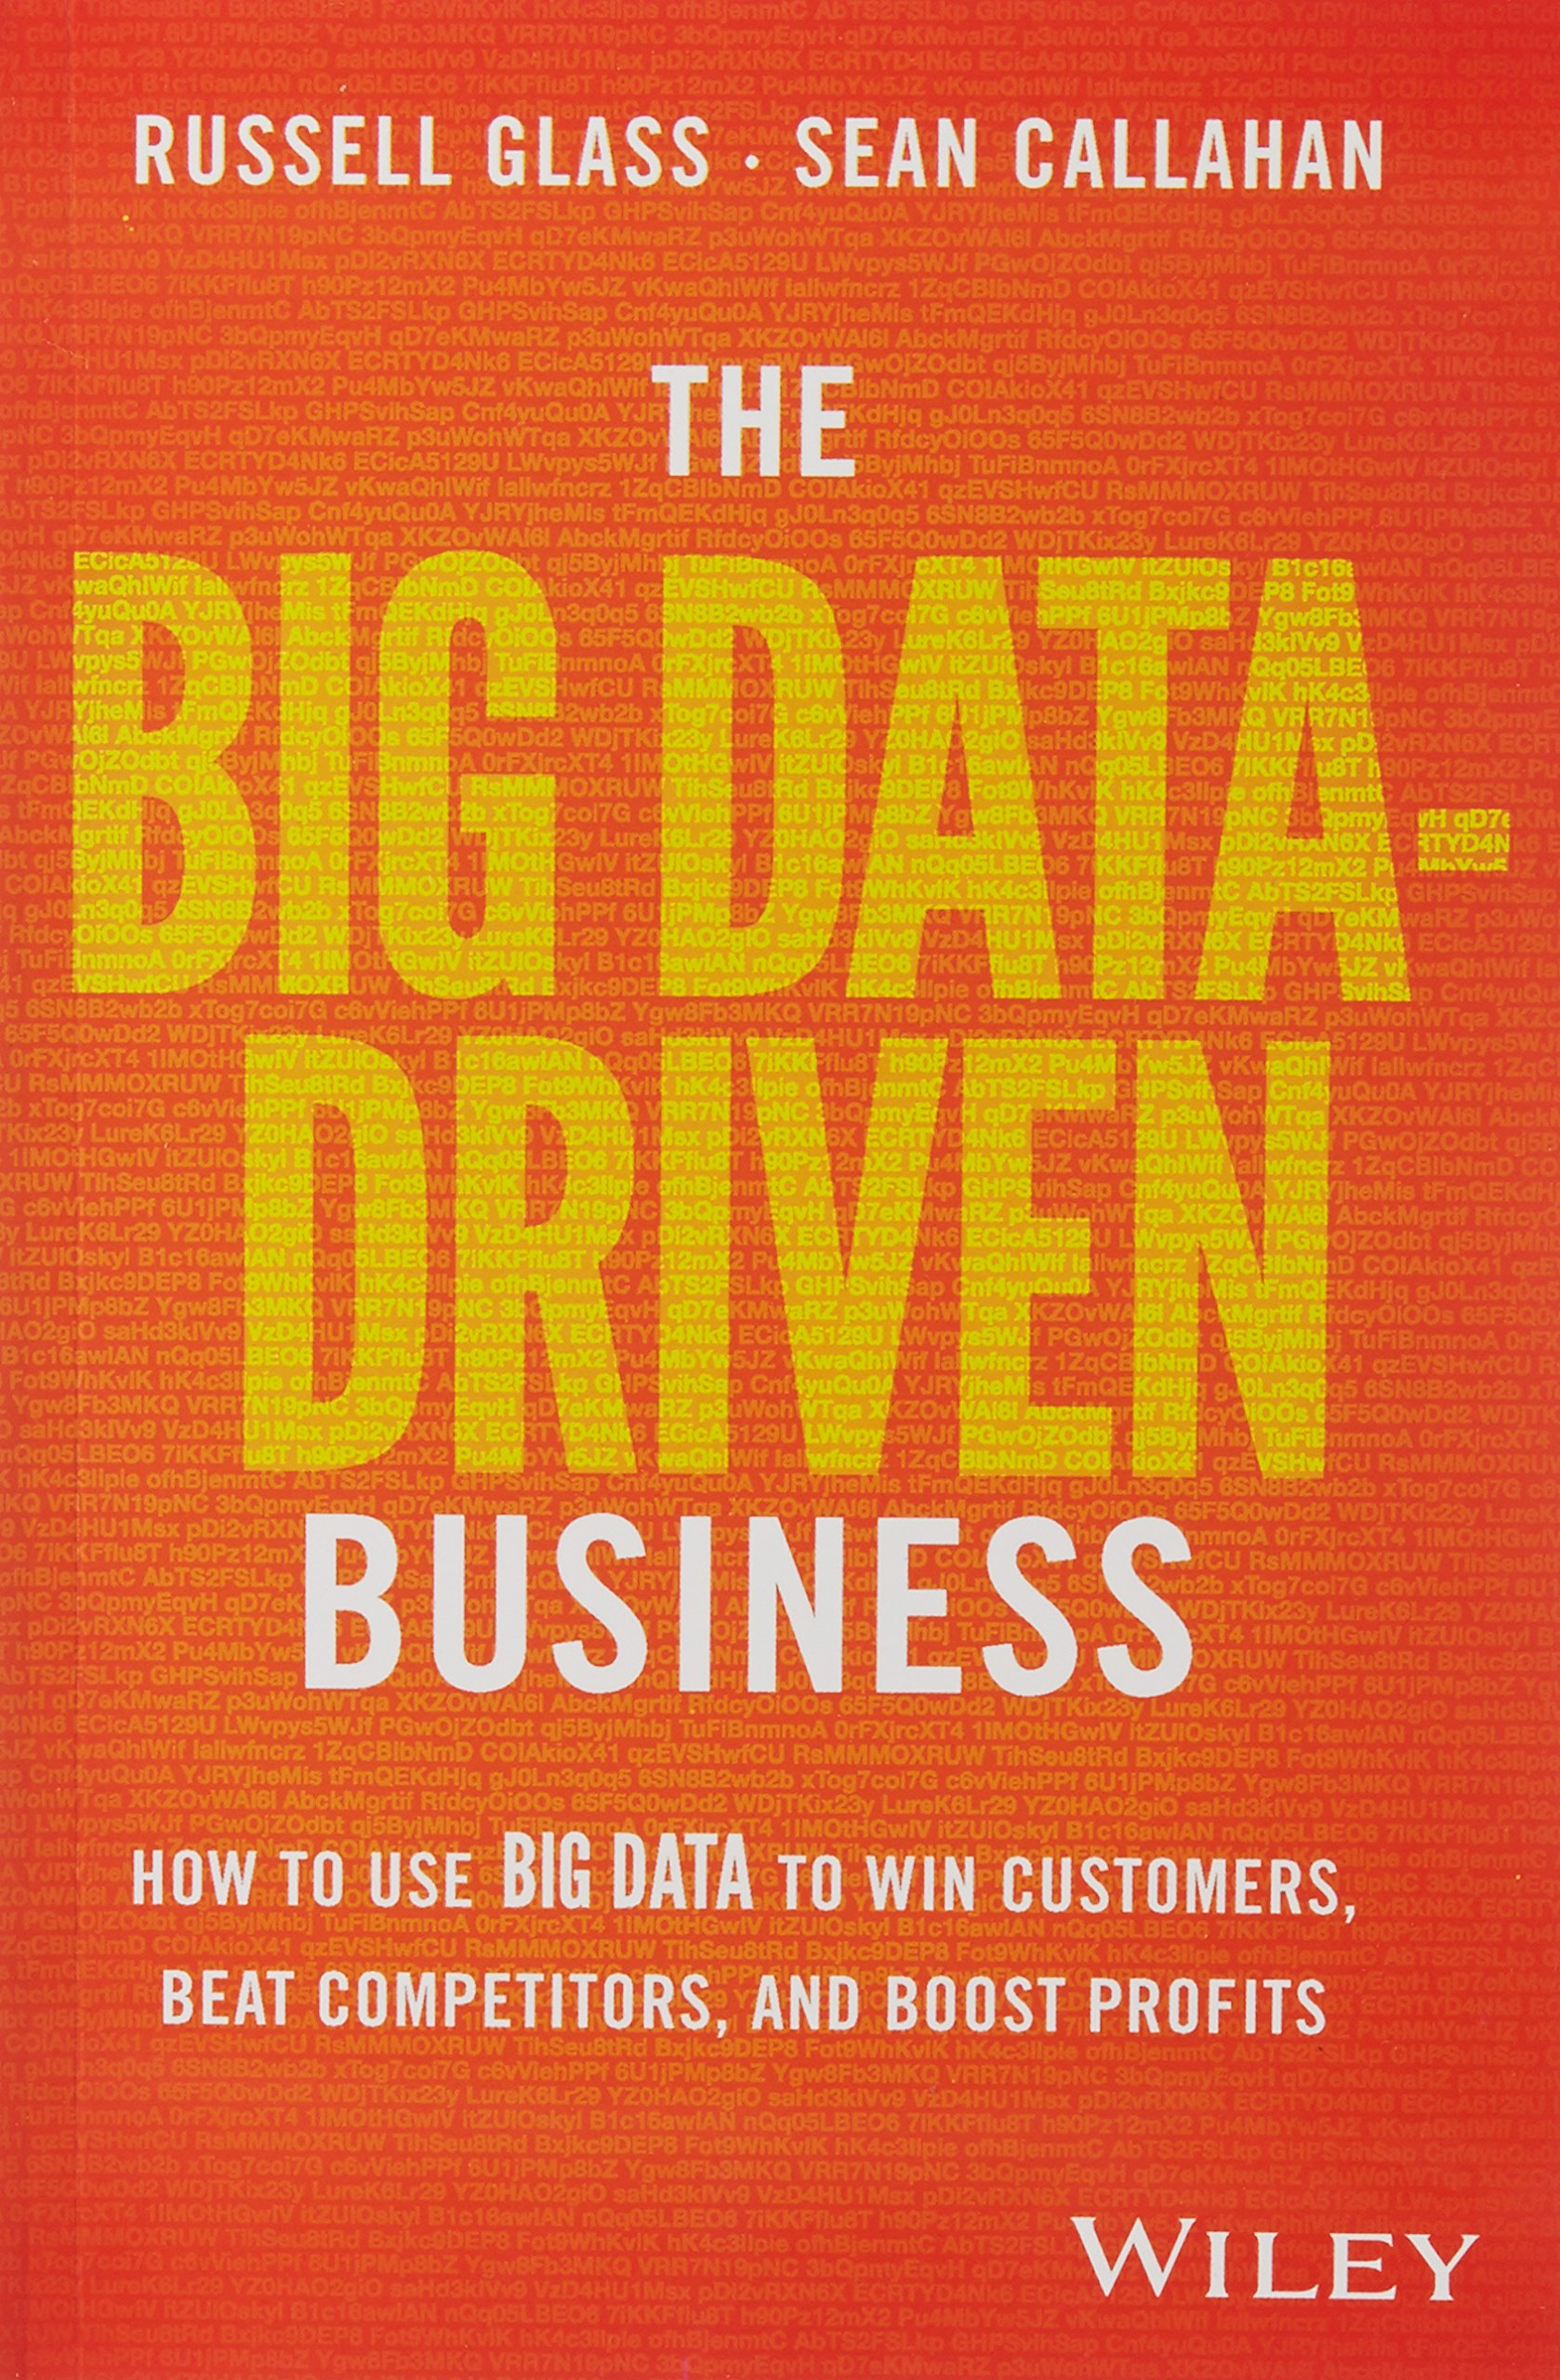 The Big Data-Driven Business: How to Use Big Data to Win Customers, Beat Competitors and Boost Profits